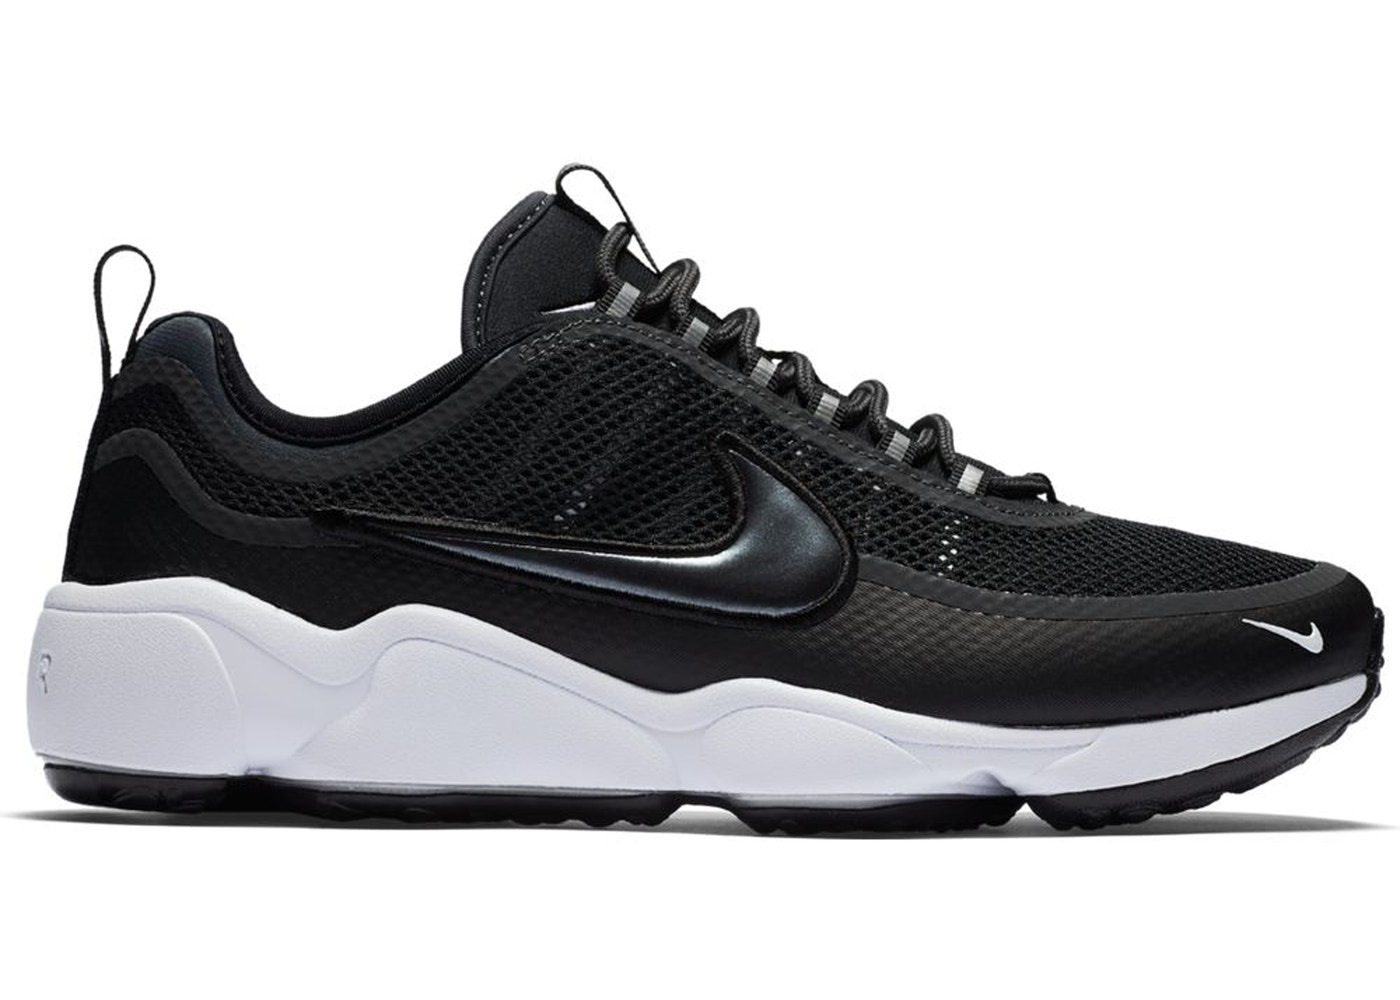 3c787a1c0 Sell. or Ask. Size: 6.5. View All Bids. Air Zoom Spiridon 16 Black Metallic  Hematite